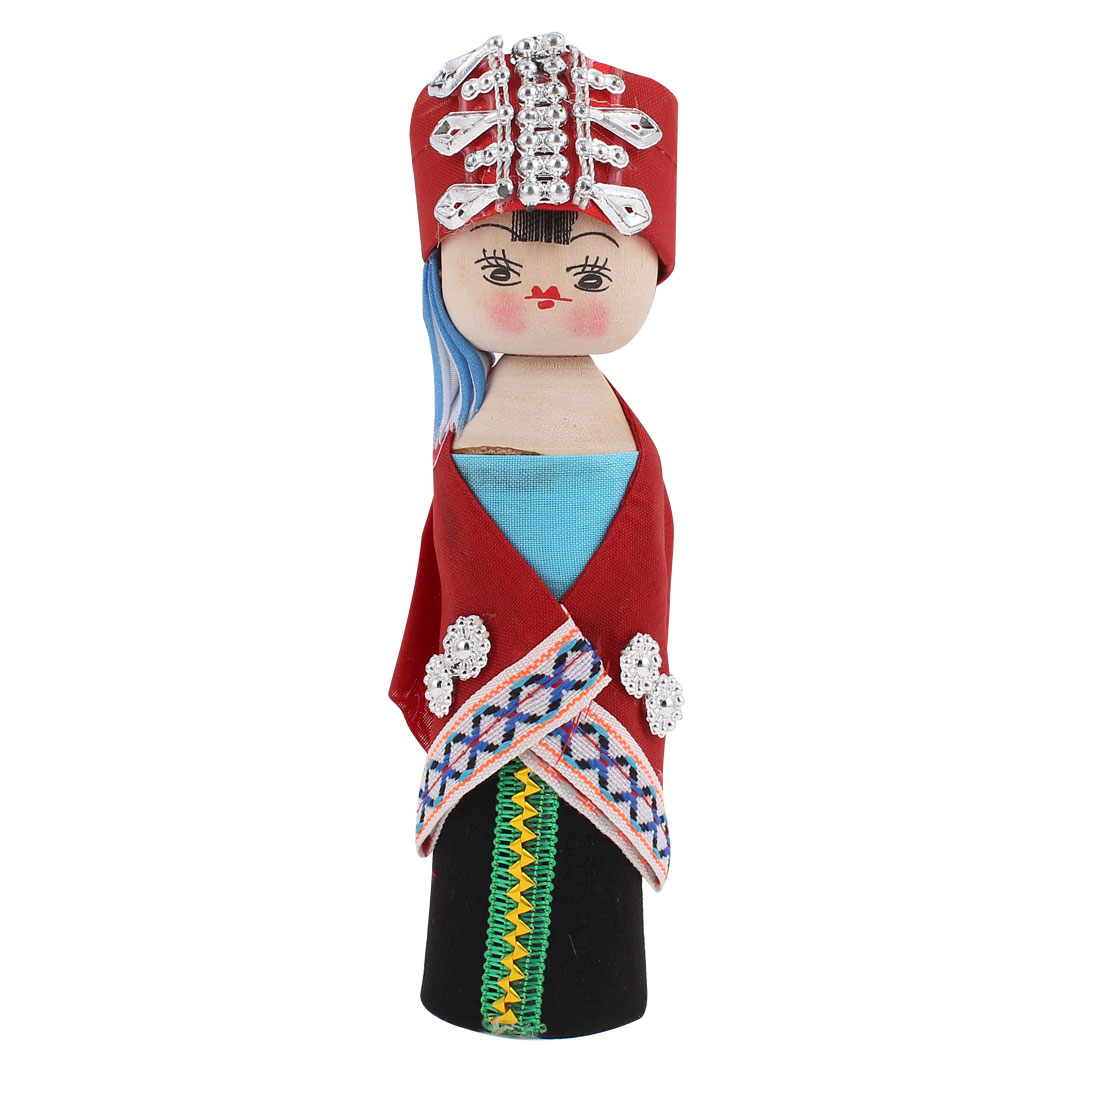 Silver Tone Headdress Red Cloth Chinese Minority Woman Costume Wooden Doll 17cm Height